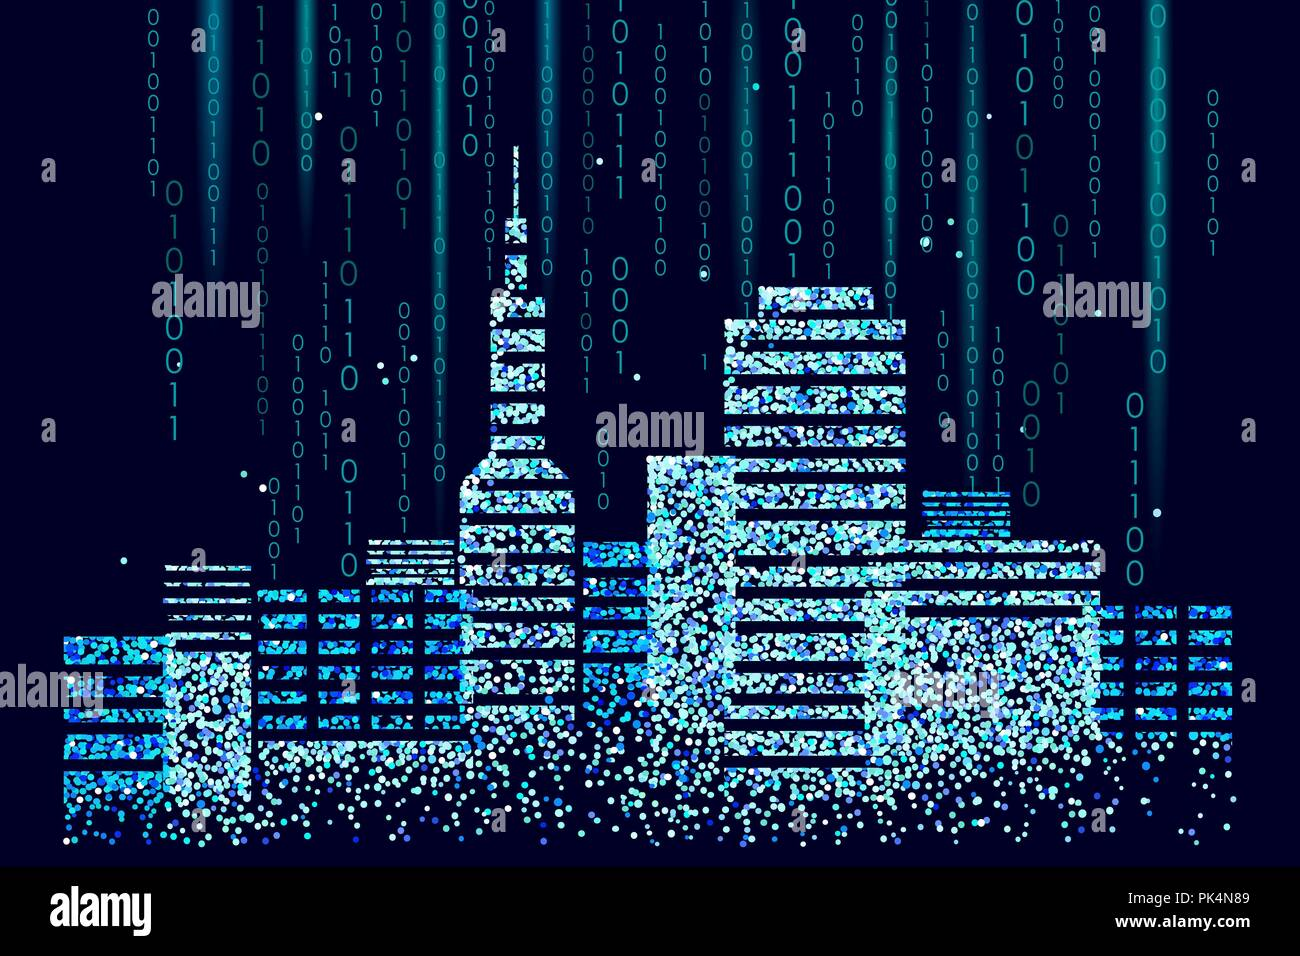 Smart city 3D spotted dots. Intelligent building automation system business concept. Web online computer binary code. Architecture urban cityscape technology sketch banner vector illustration - Stock Vector